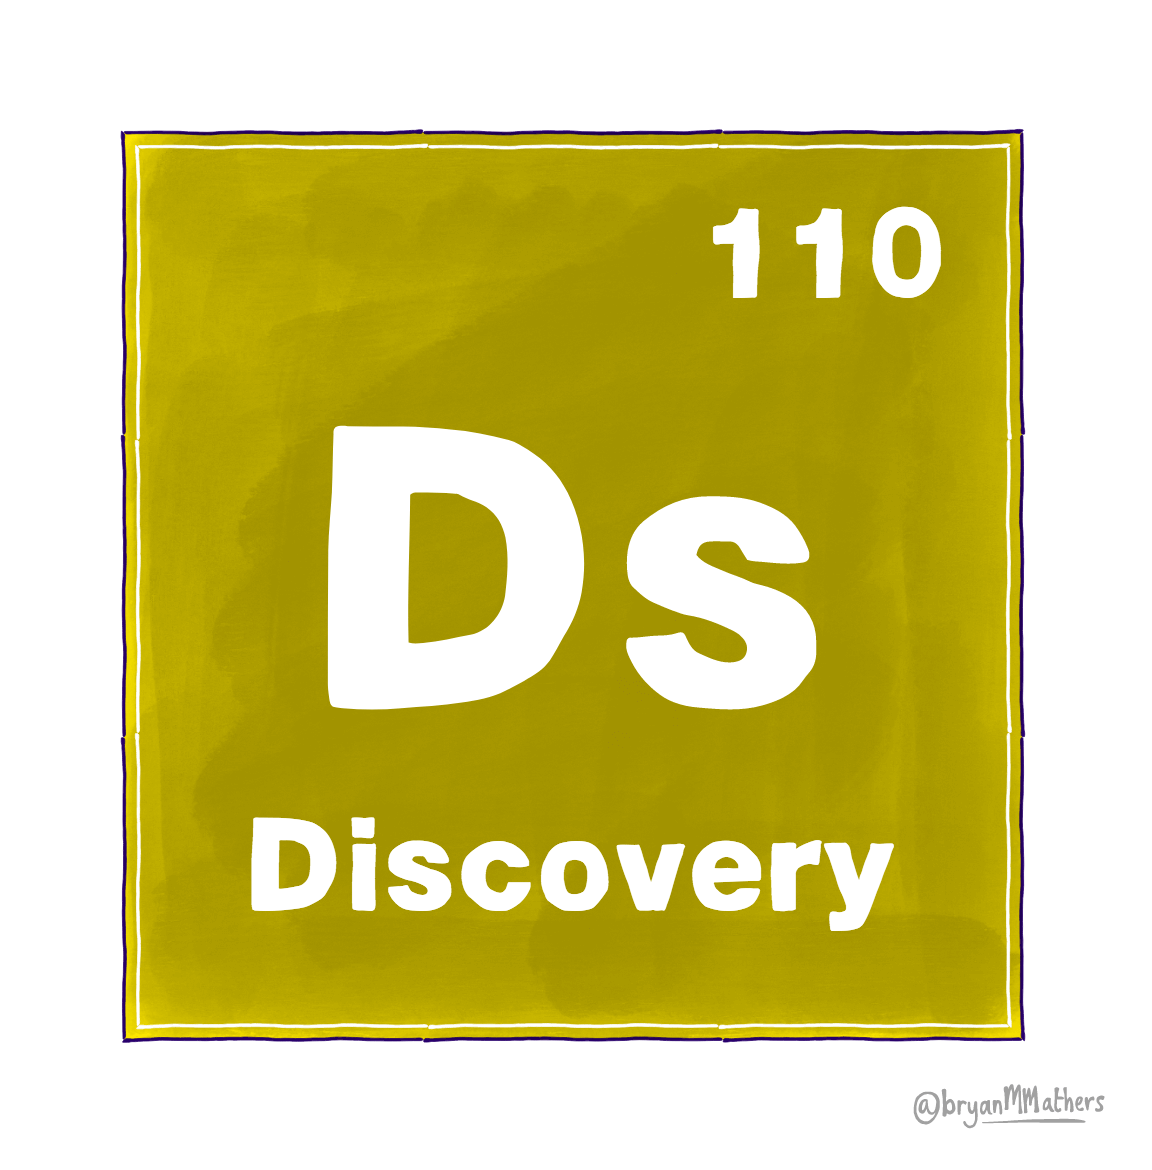 The element of Discovery